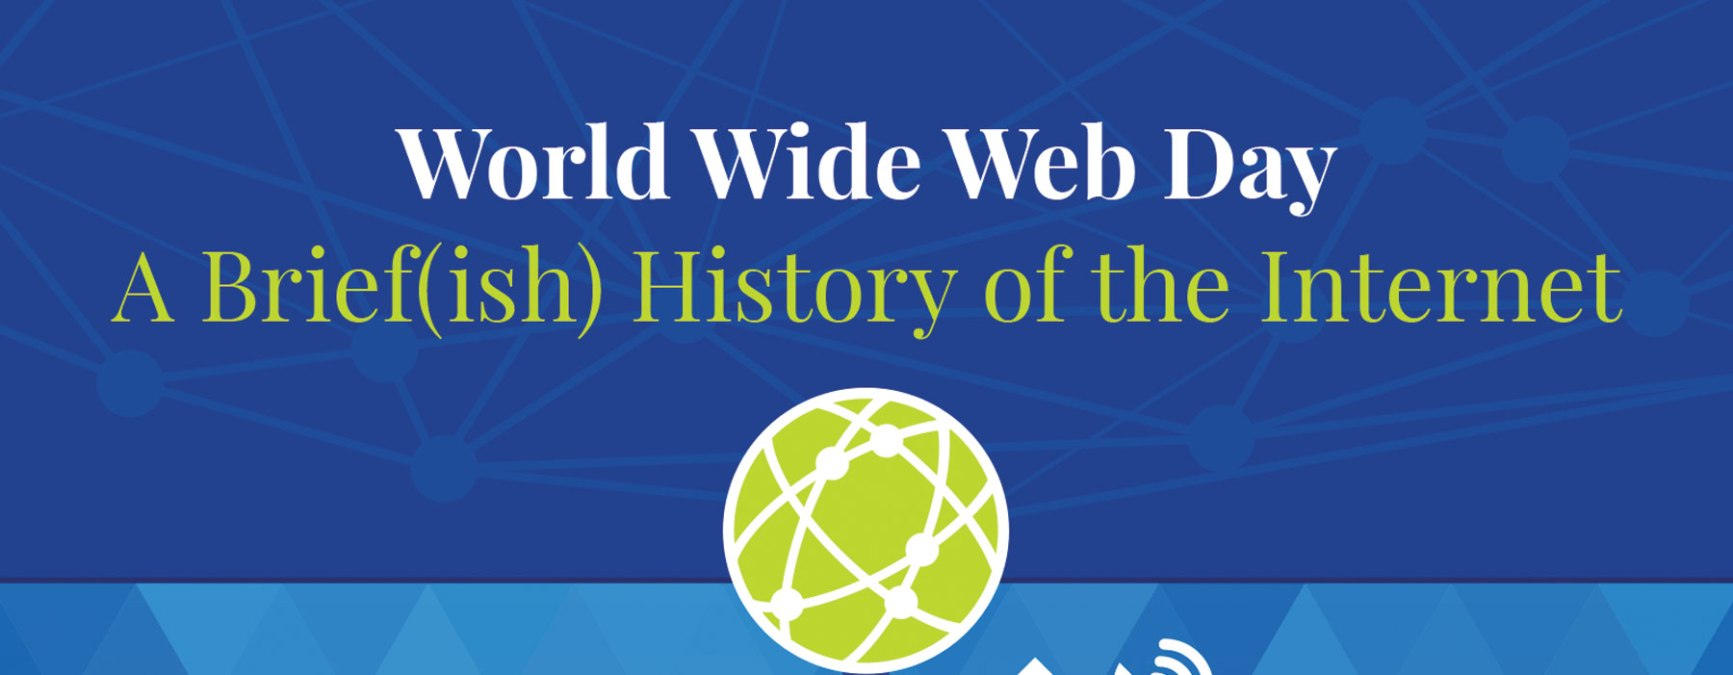 A Brief(ish) History of the Internet – World Wide Web Day